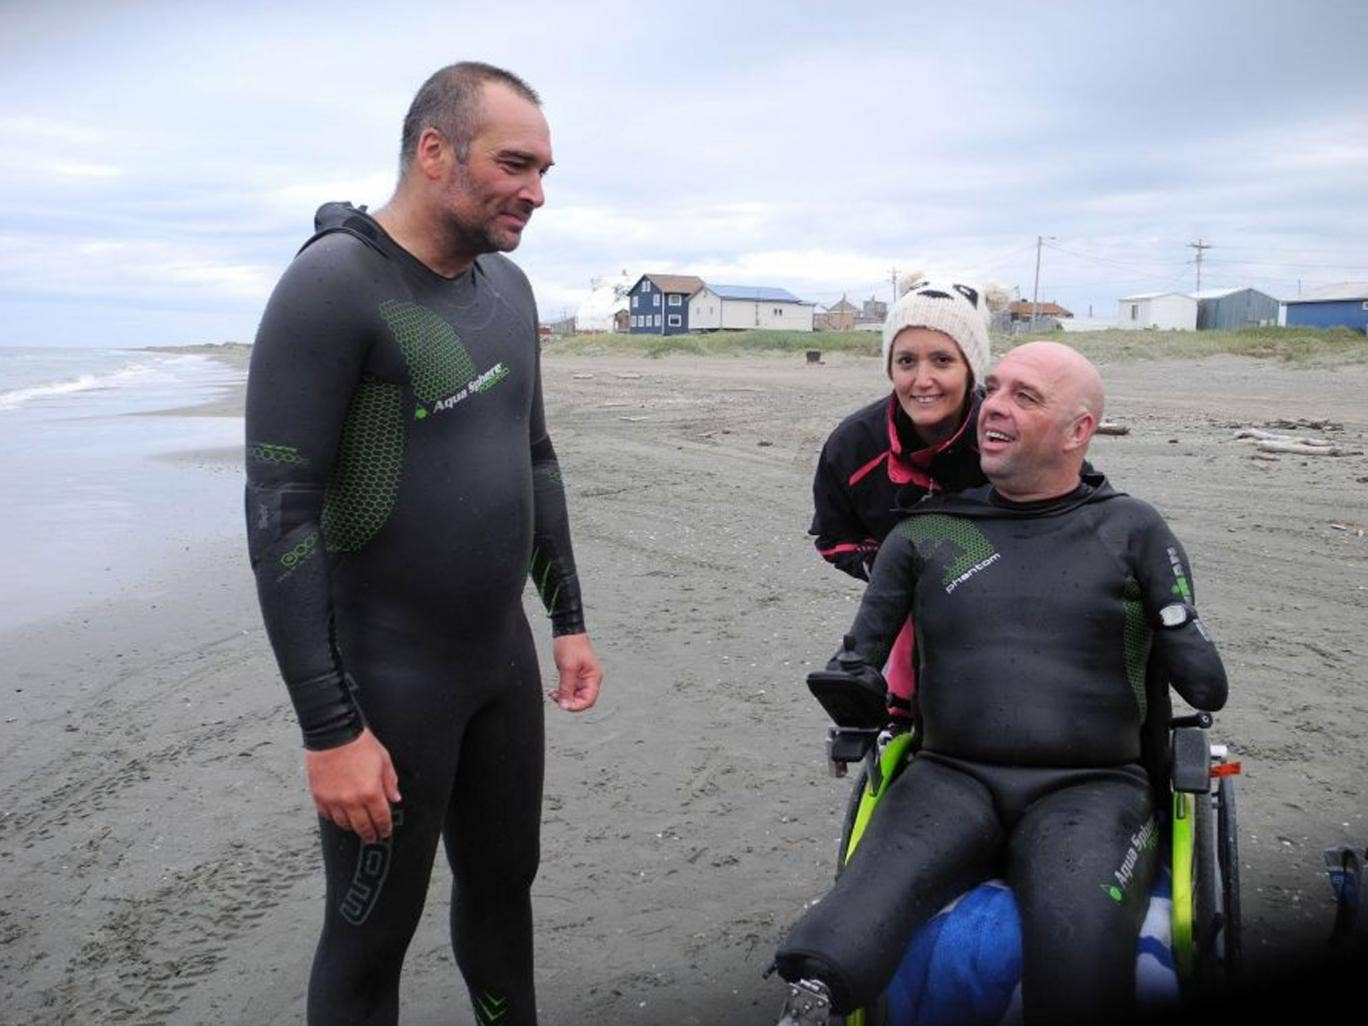 Quadruple amputee Philippe Croizon, right, speaking to his friend Arnaud Chassery, with whom he crossed the Bering Strait between North America and Russia